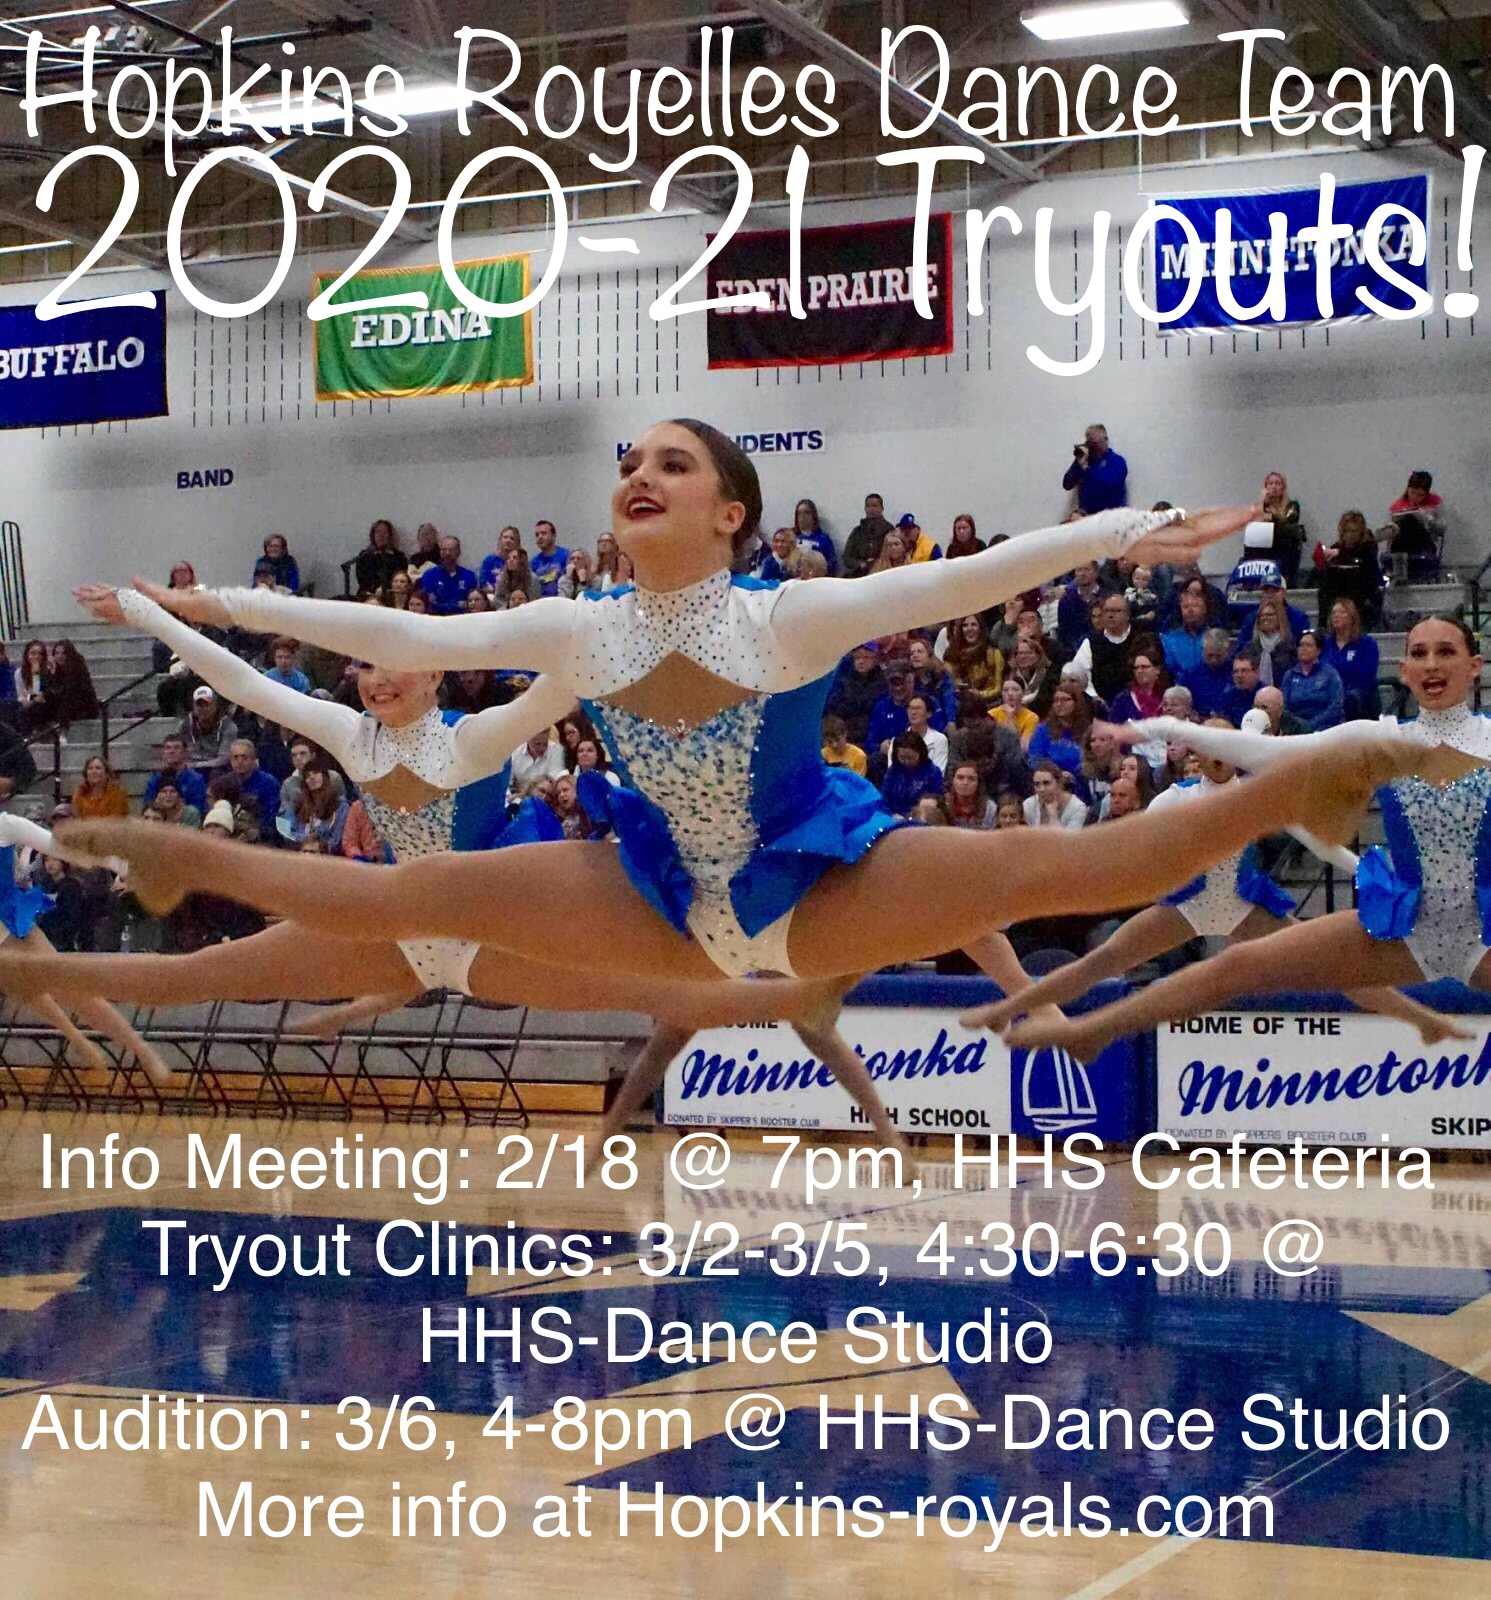 Royelles Dance Team 2020-21 Tryouts March 2-6!